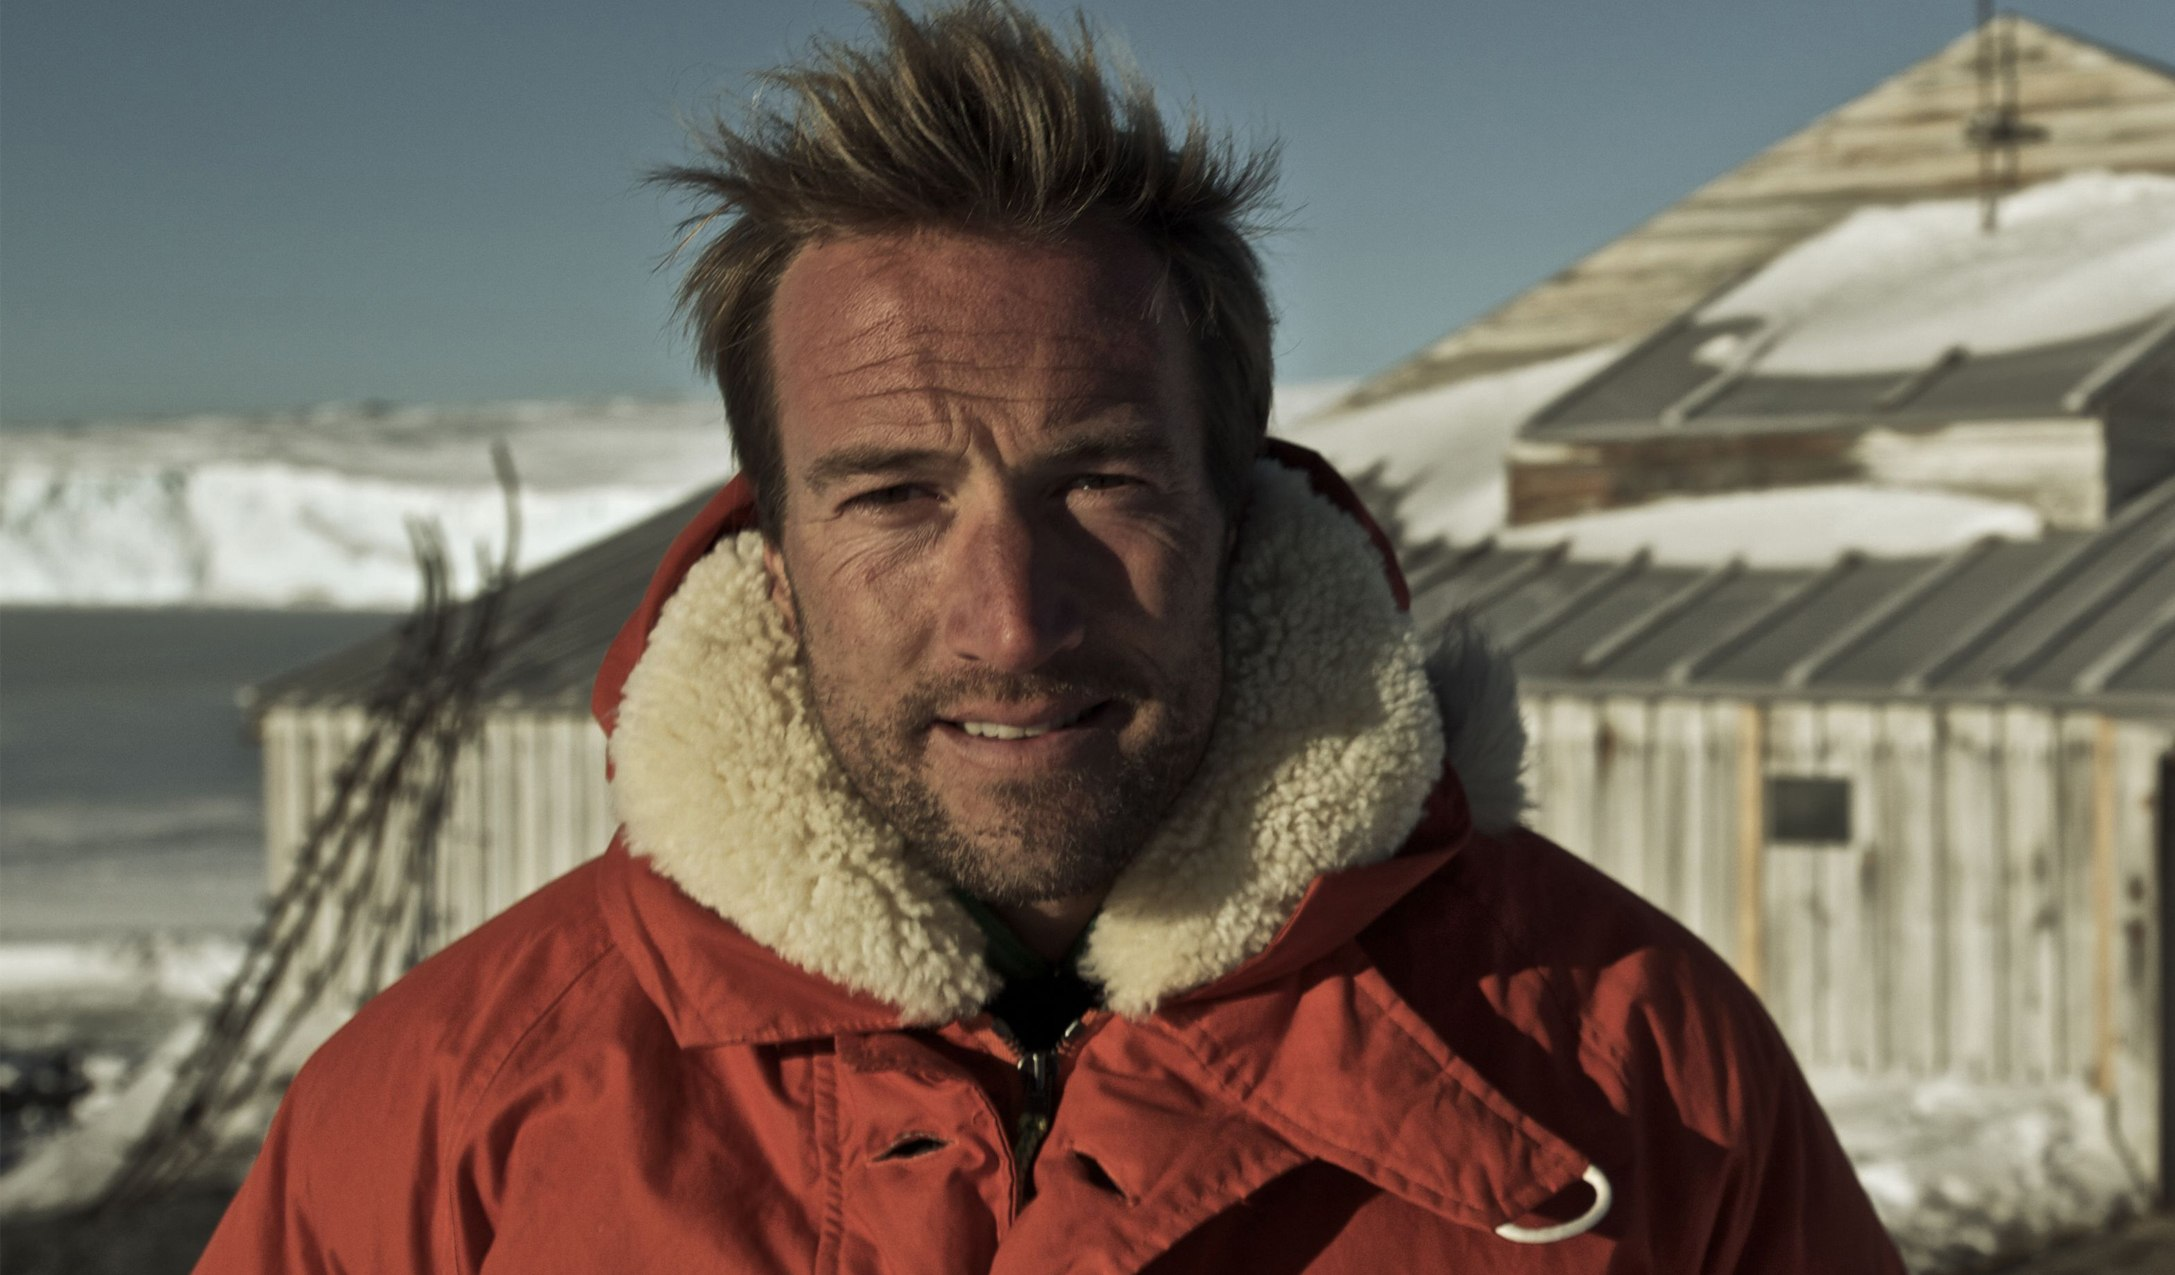 Ben Fogle - Adventures in Wilderness Header Asset